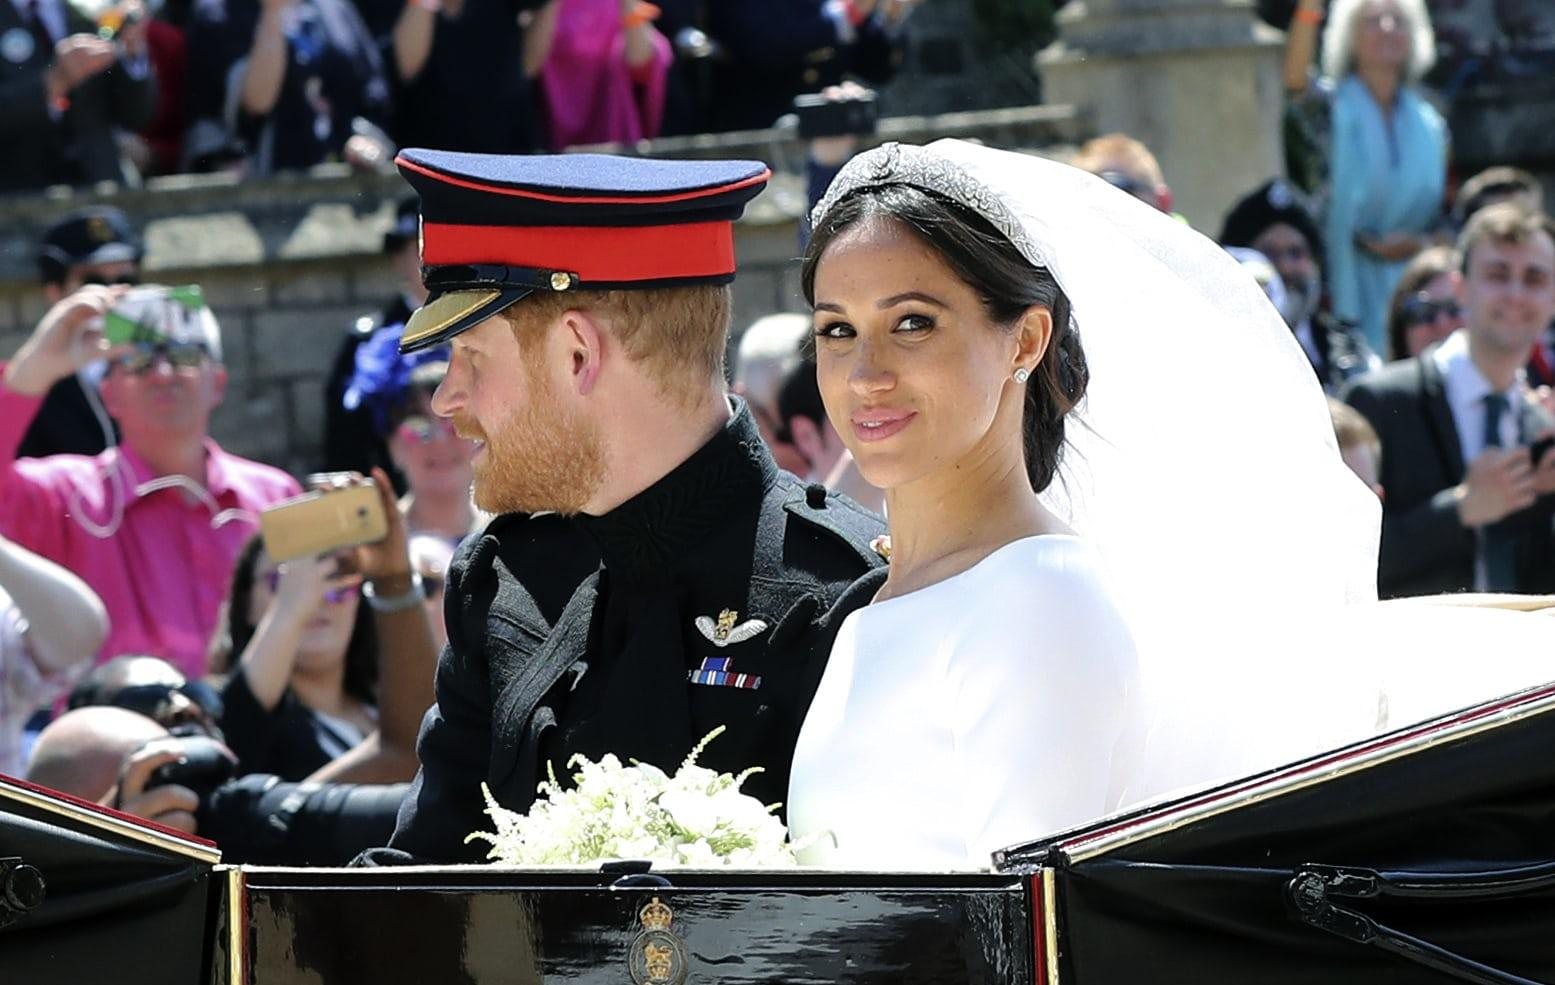 The wedding of Prince Harry and Meghan Markl